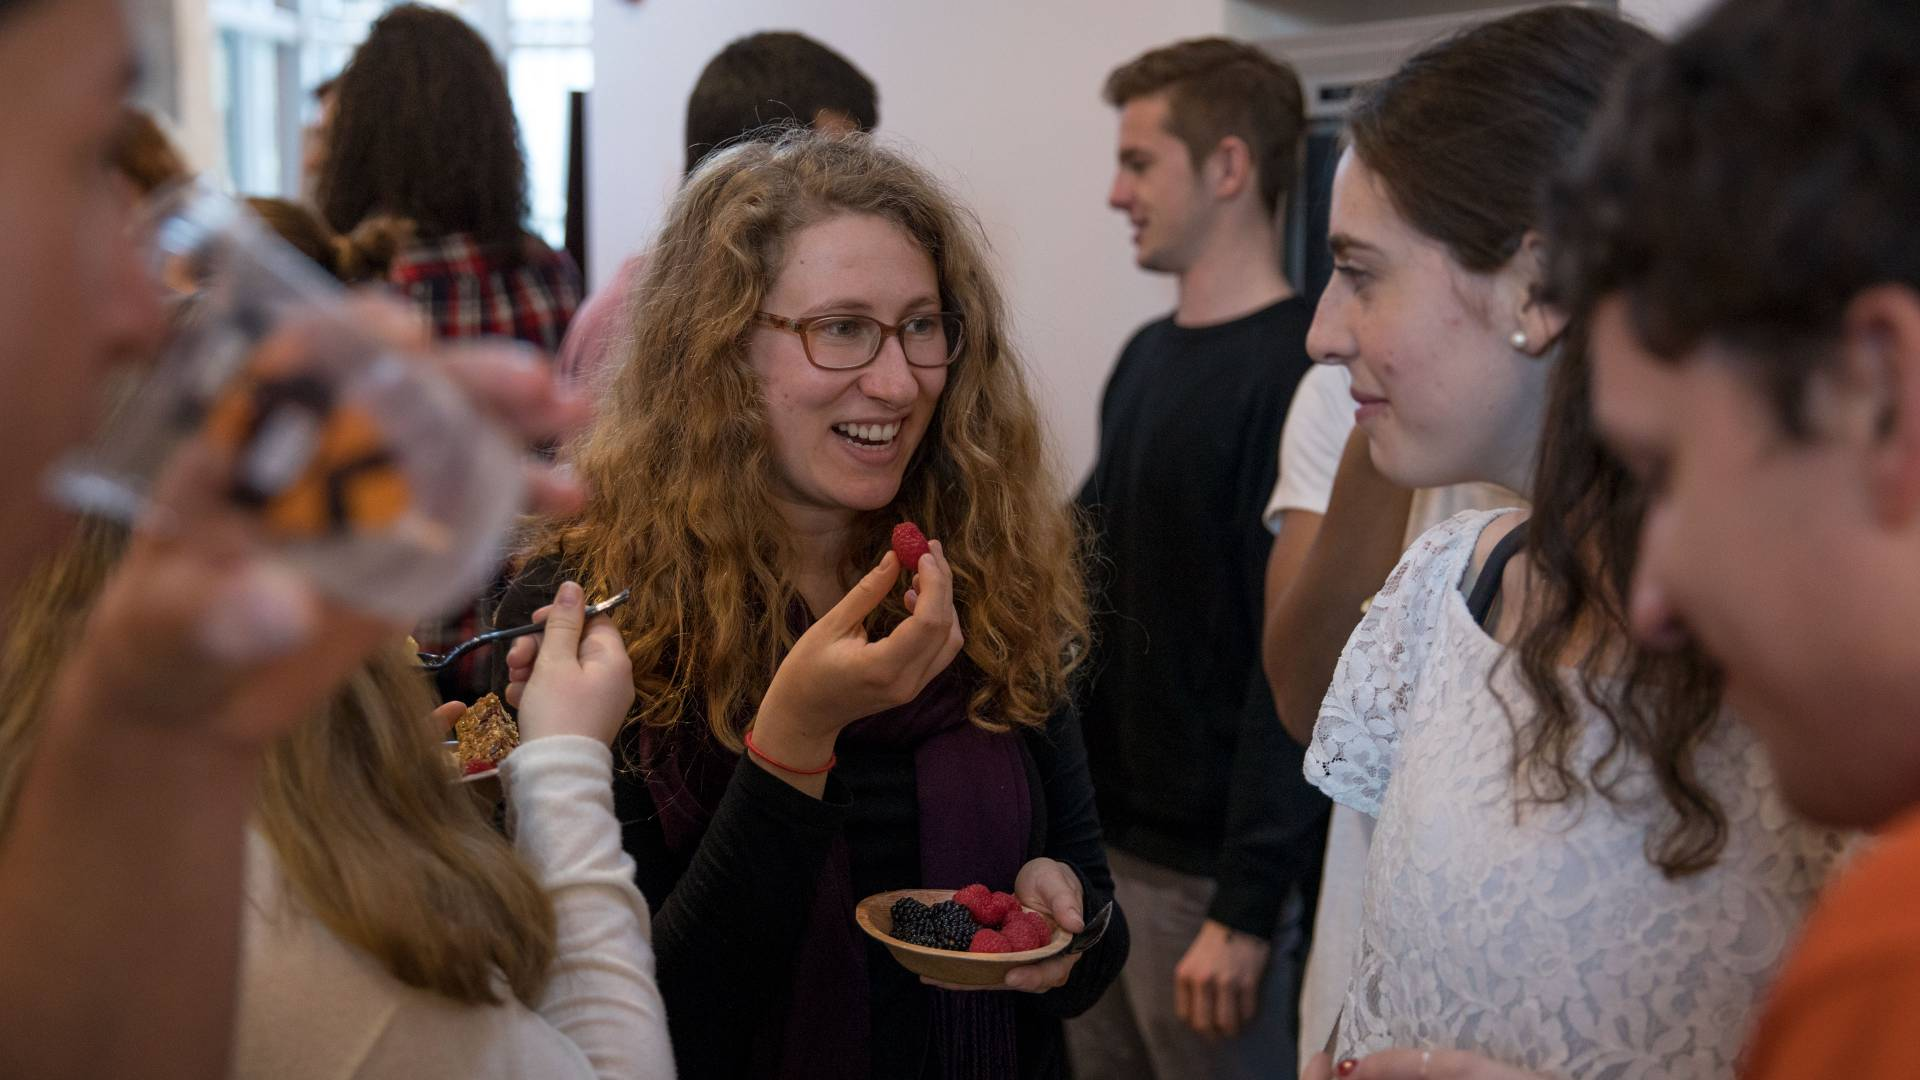 Students talking and eating berries